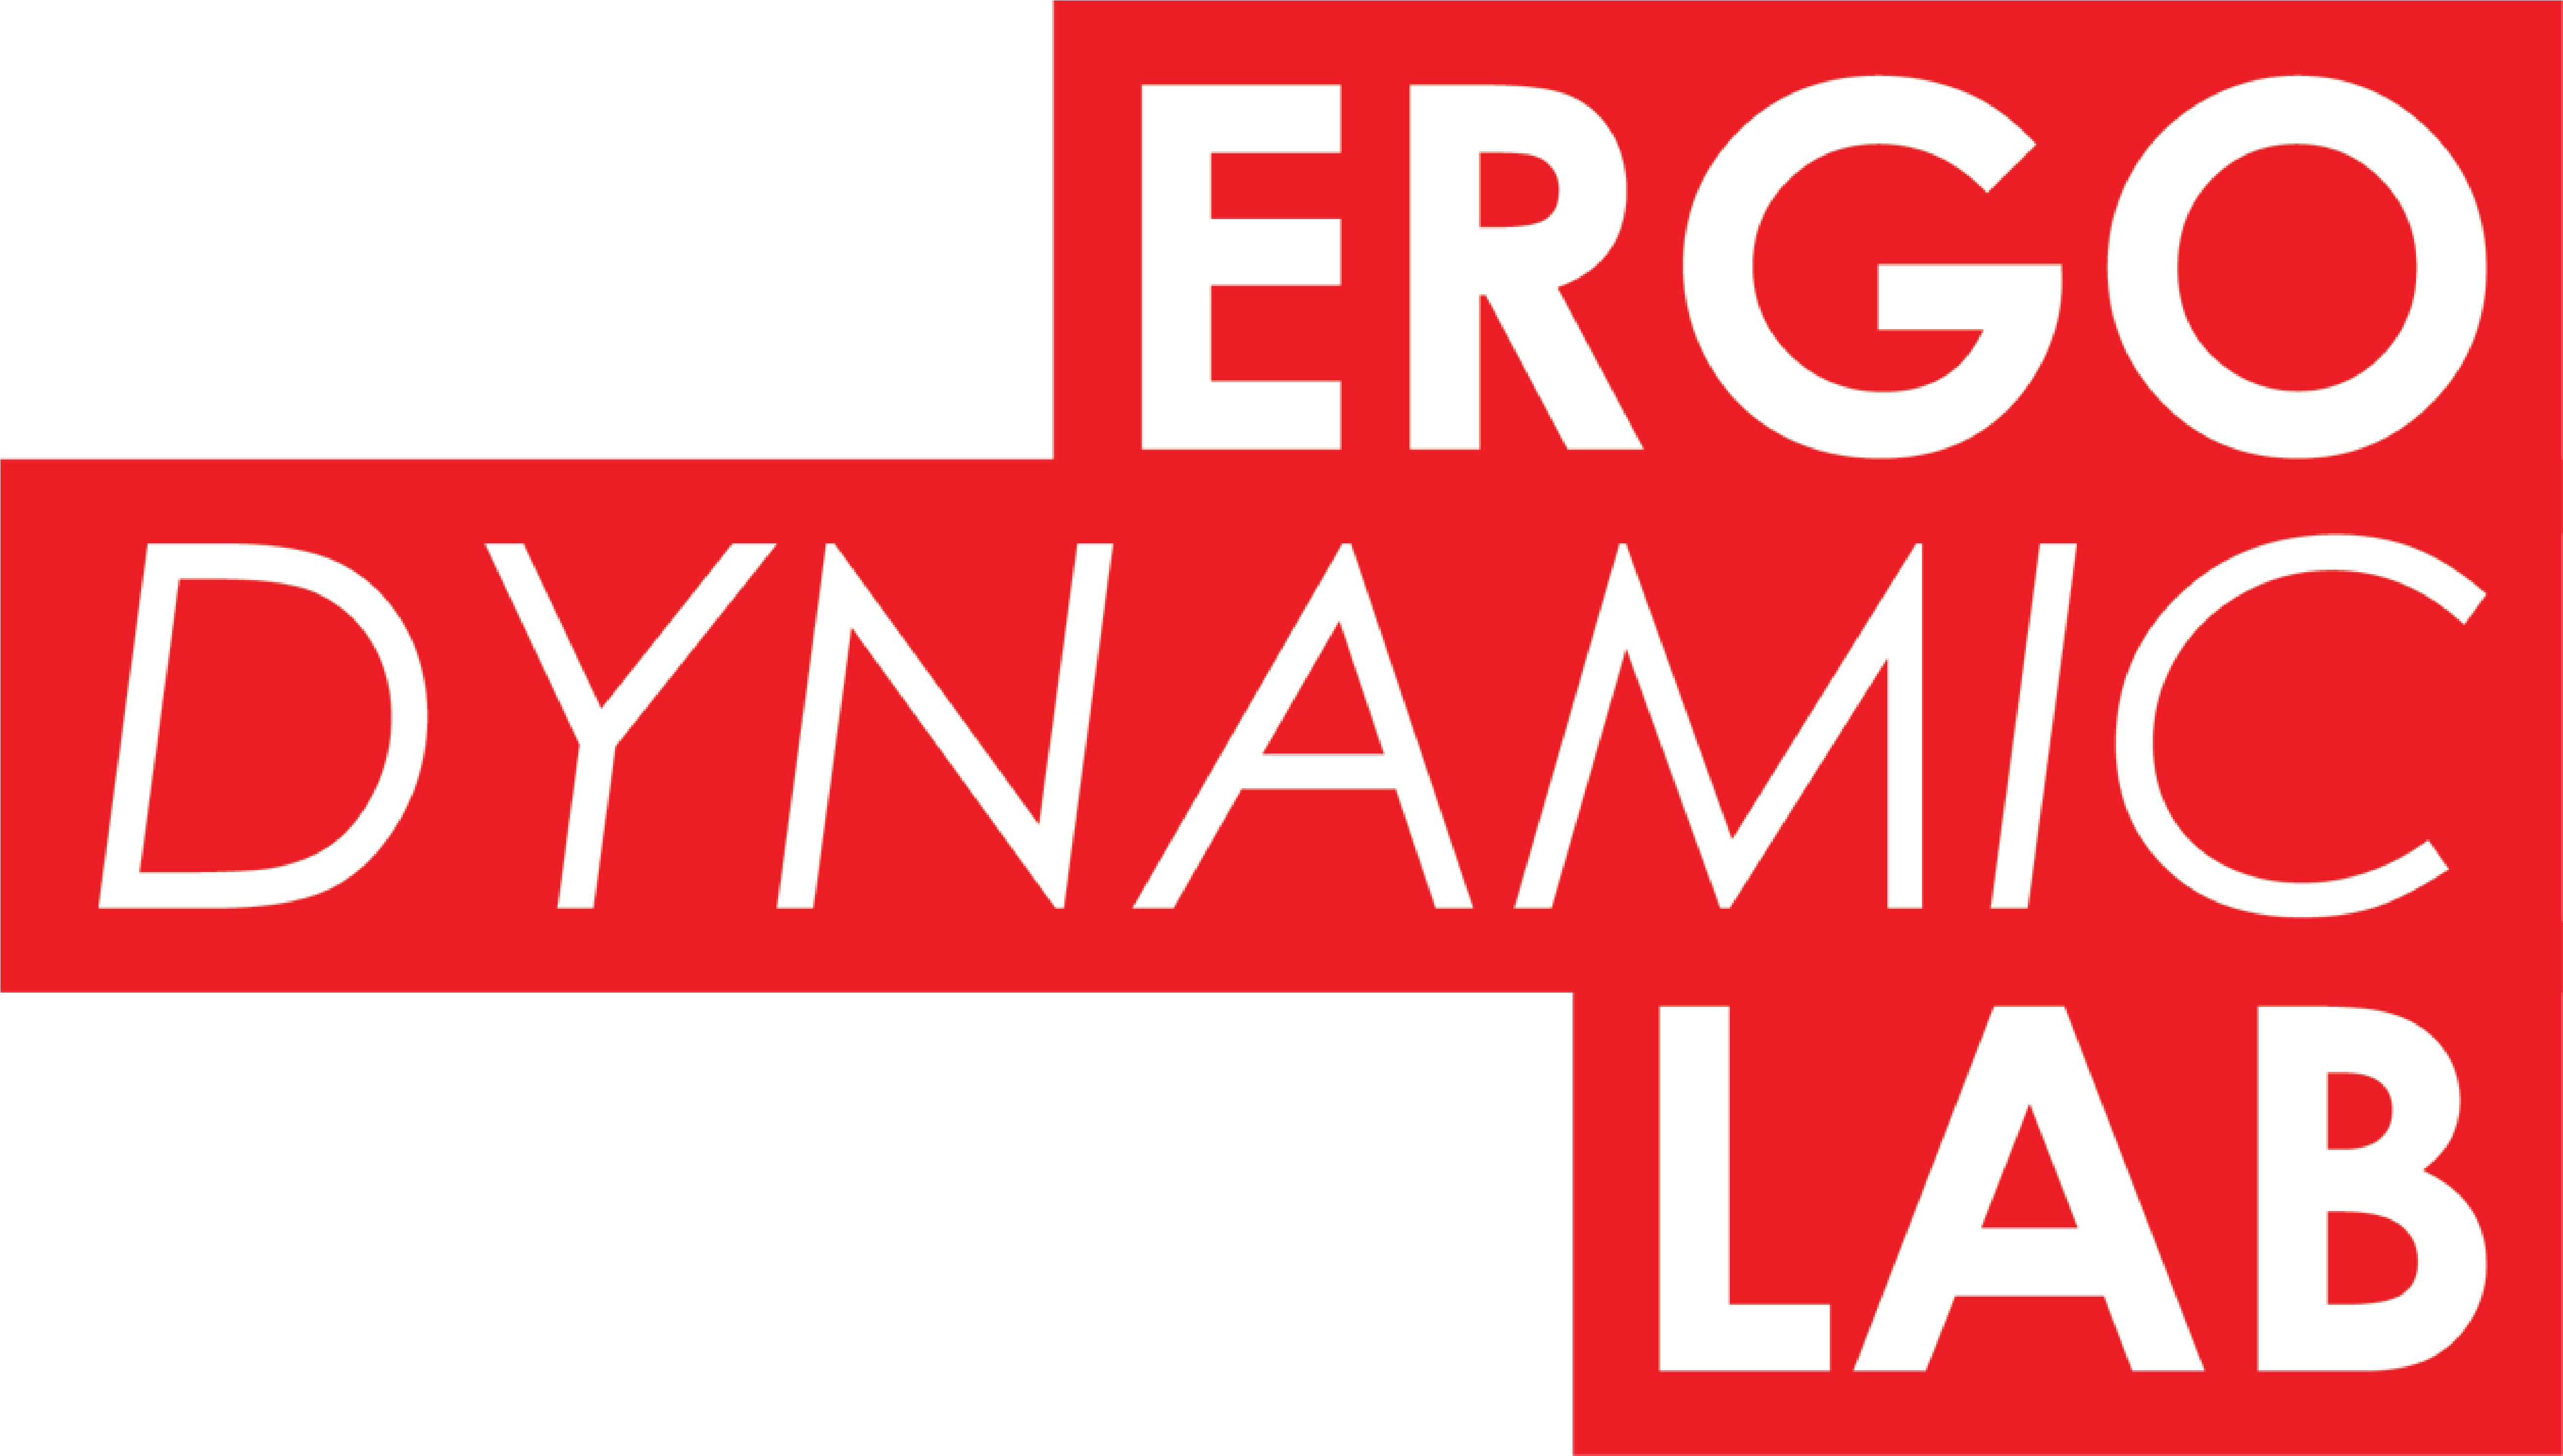 ergo dynamic lab logo